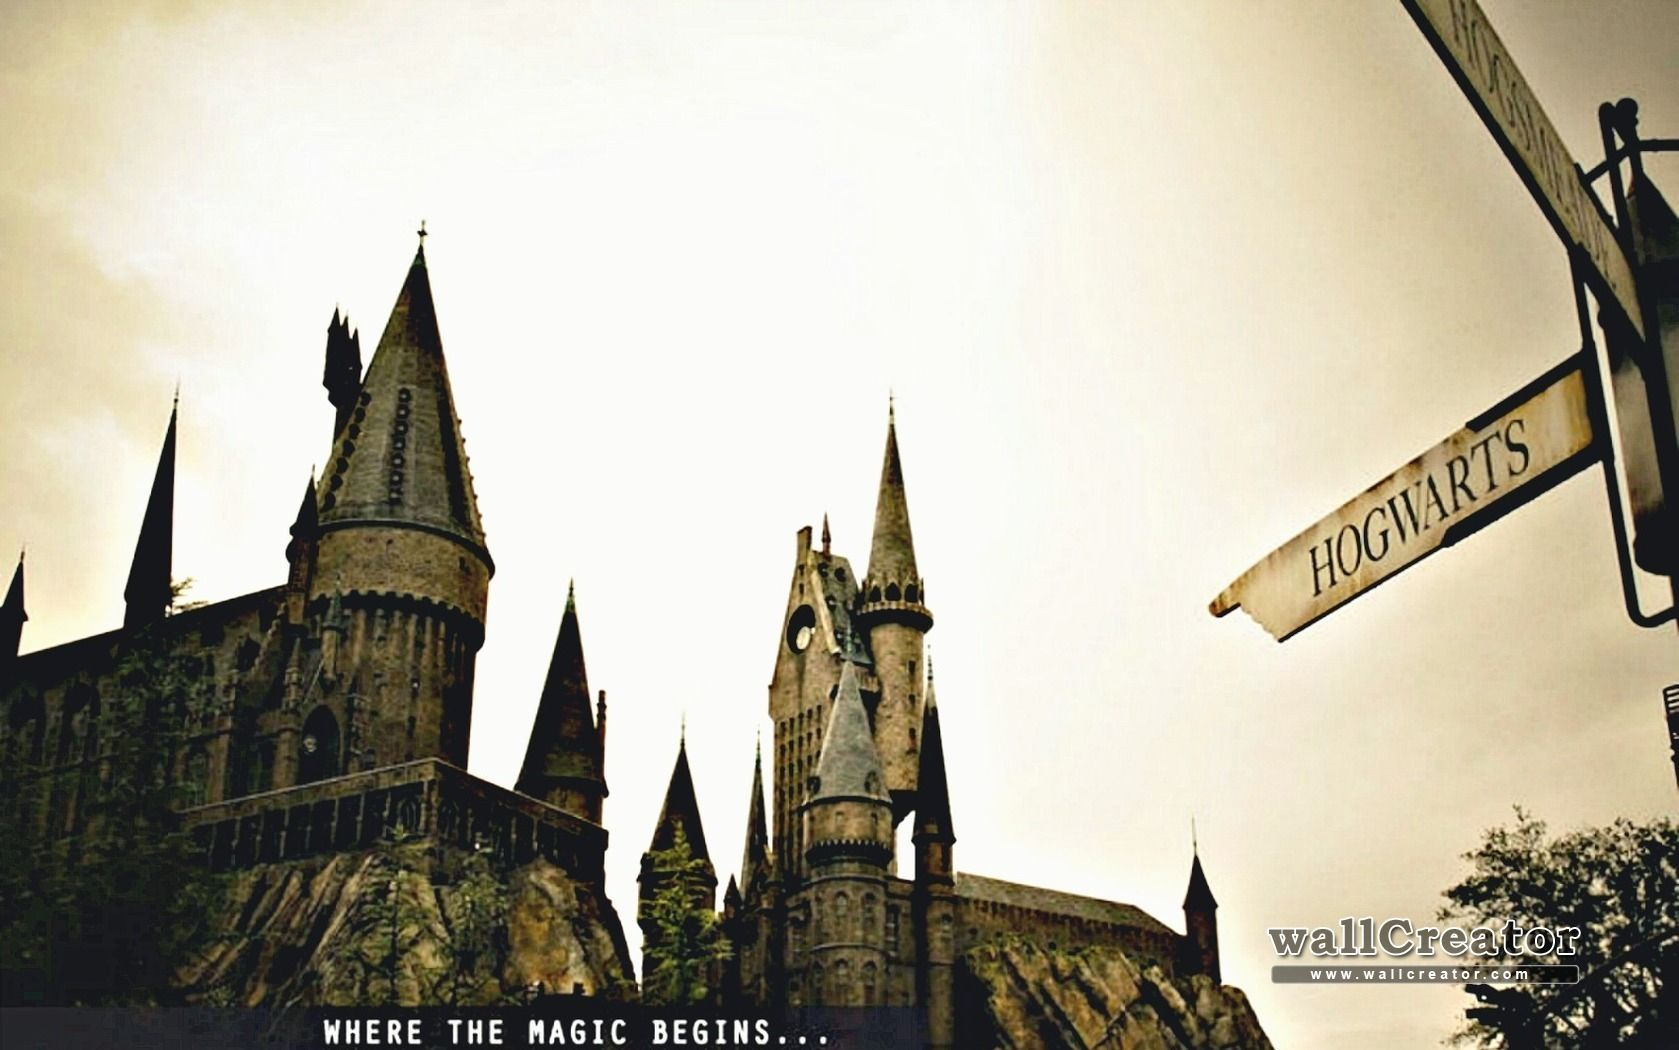 Download Wallpapers Download Quotes Harry Potter 1920 1080 Harry Pot Harry Potter Wallpaper Backgrounds Desktop Wallpaper Harry Potter Harry Potter Wallpaper